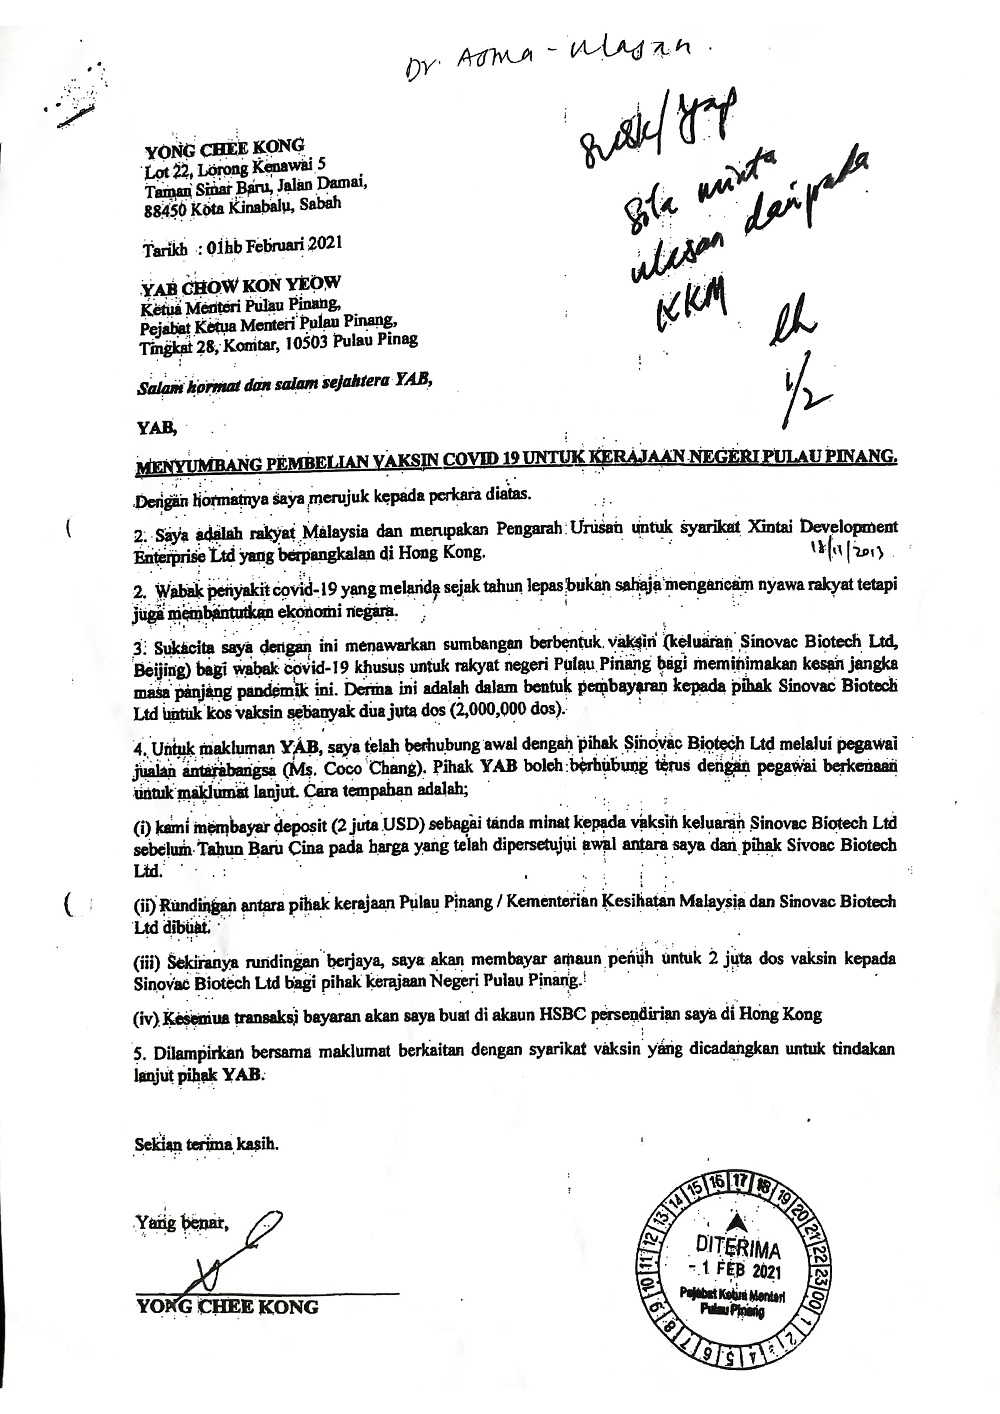 A scanned image of the bogus letter. — Picture courtesy of National Covid-19 Immunisation Programme